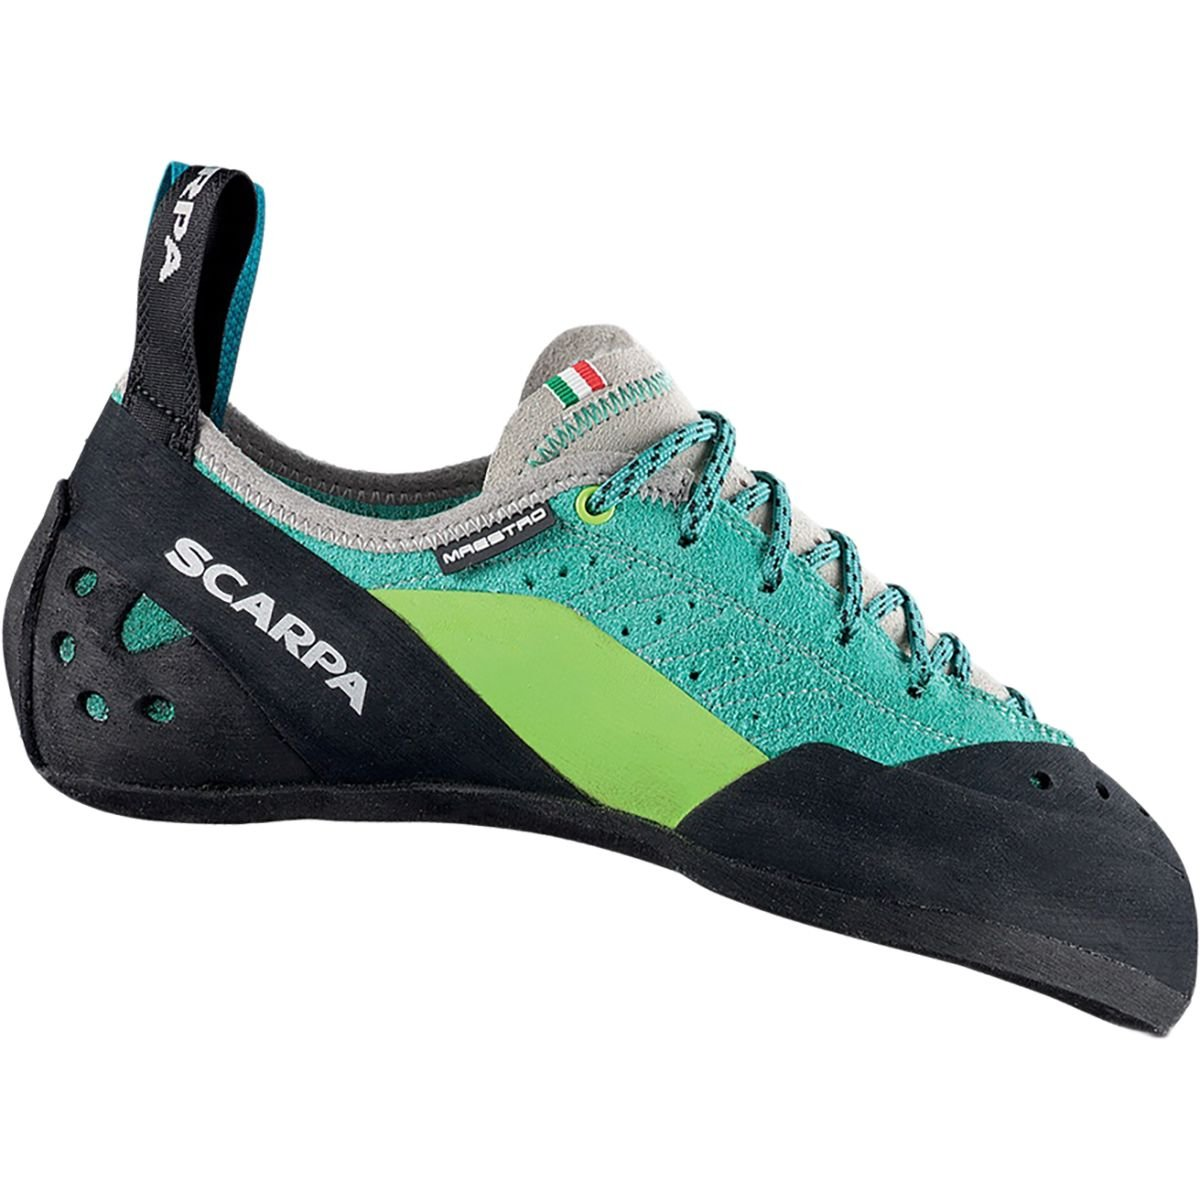 SCARPA Maestro Climbing Shoe - Women's Green Blue, 35.5 by SCARPA